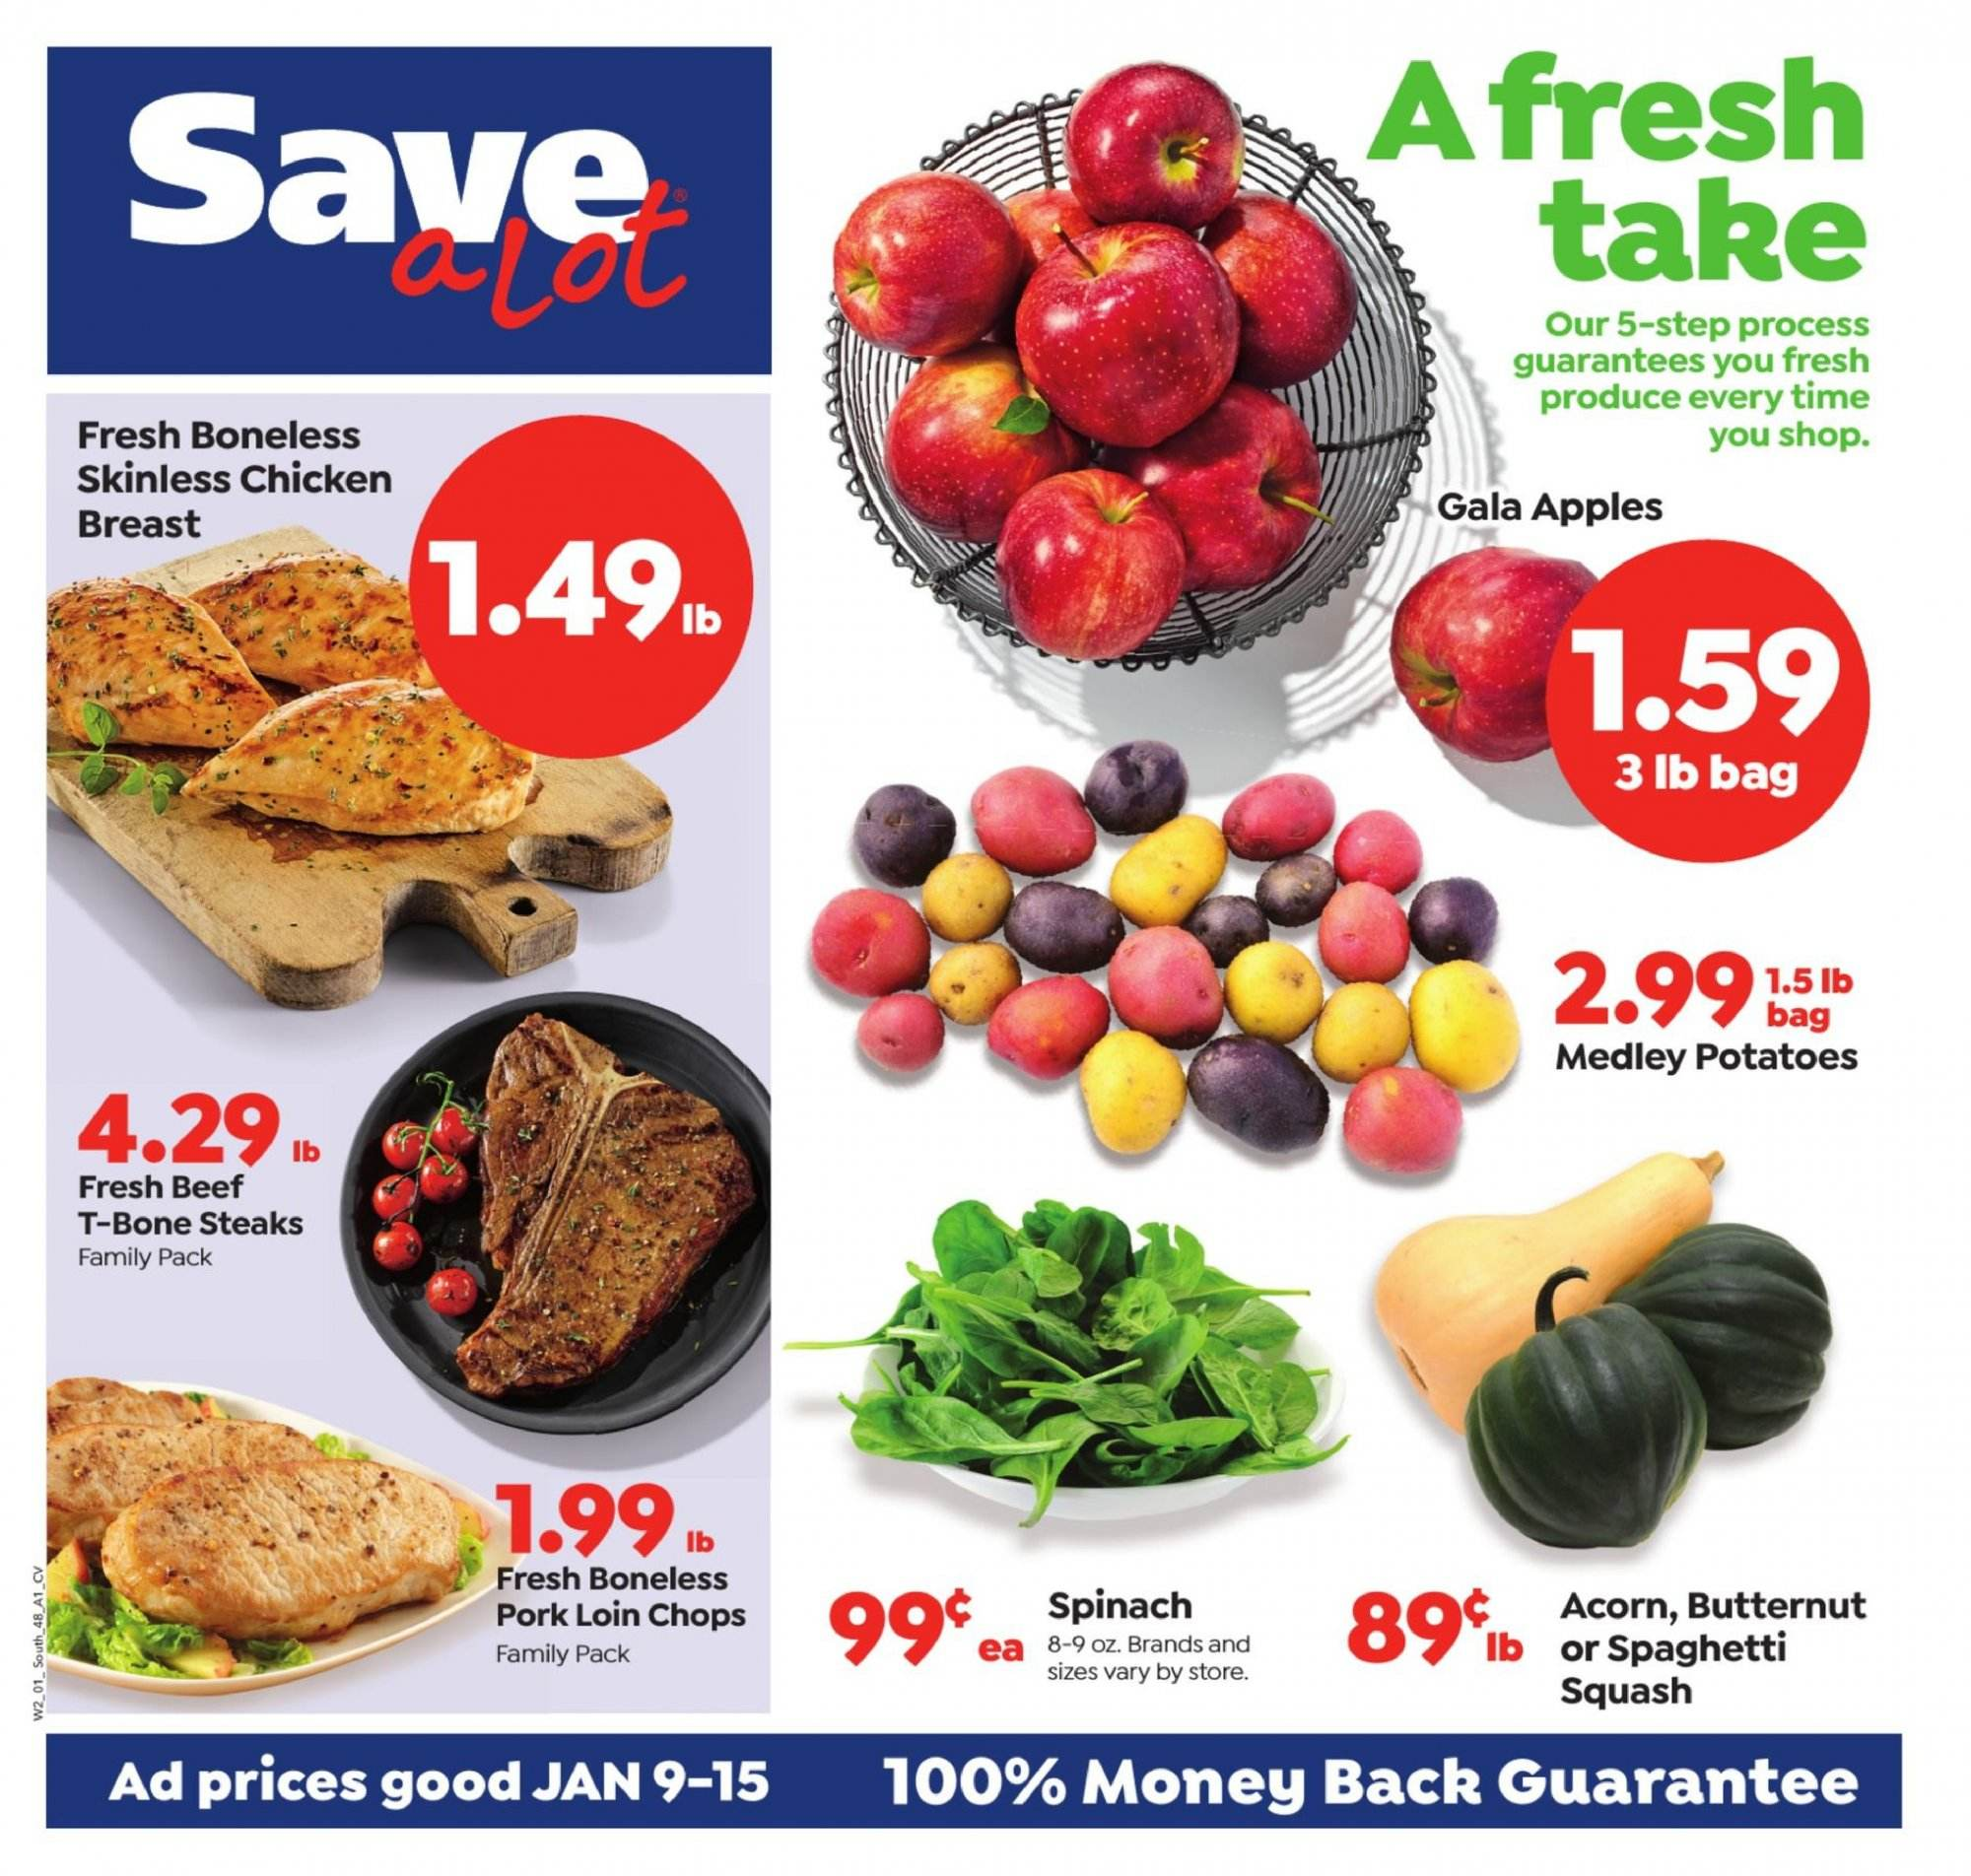 Save a Lot Flyer - 01.09.2019 - 01.15.2019 - Sales products - apple, bag, beef meat, butternut squash, gala apples, spaghetti, spinach, squash, t-bone steak, pork loin, pork meat, potatoes, chicken, chicken breast. Page 1.